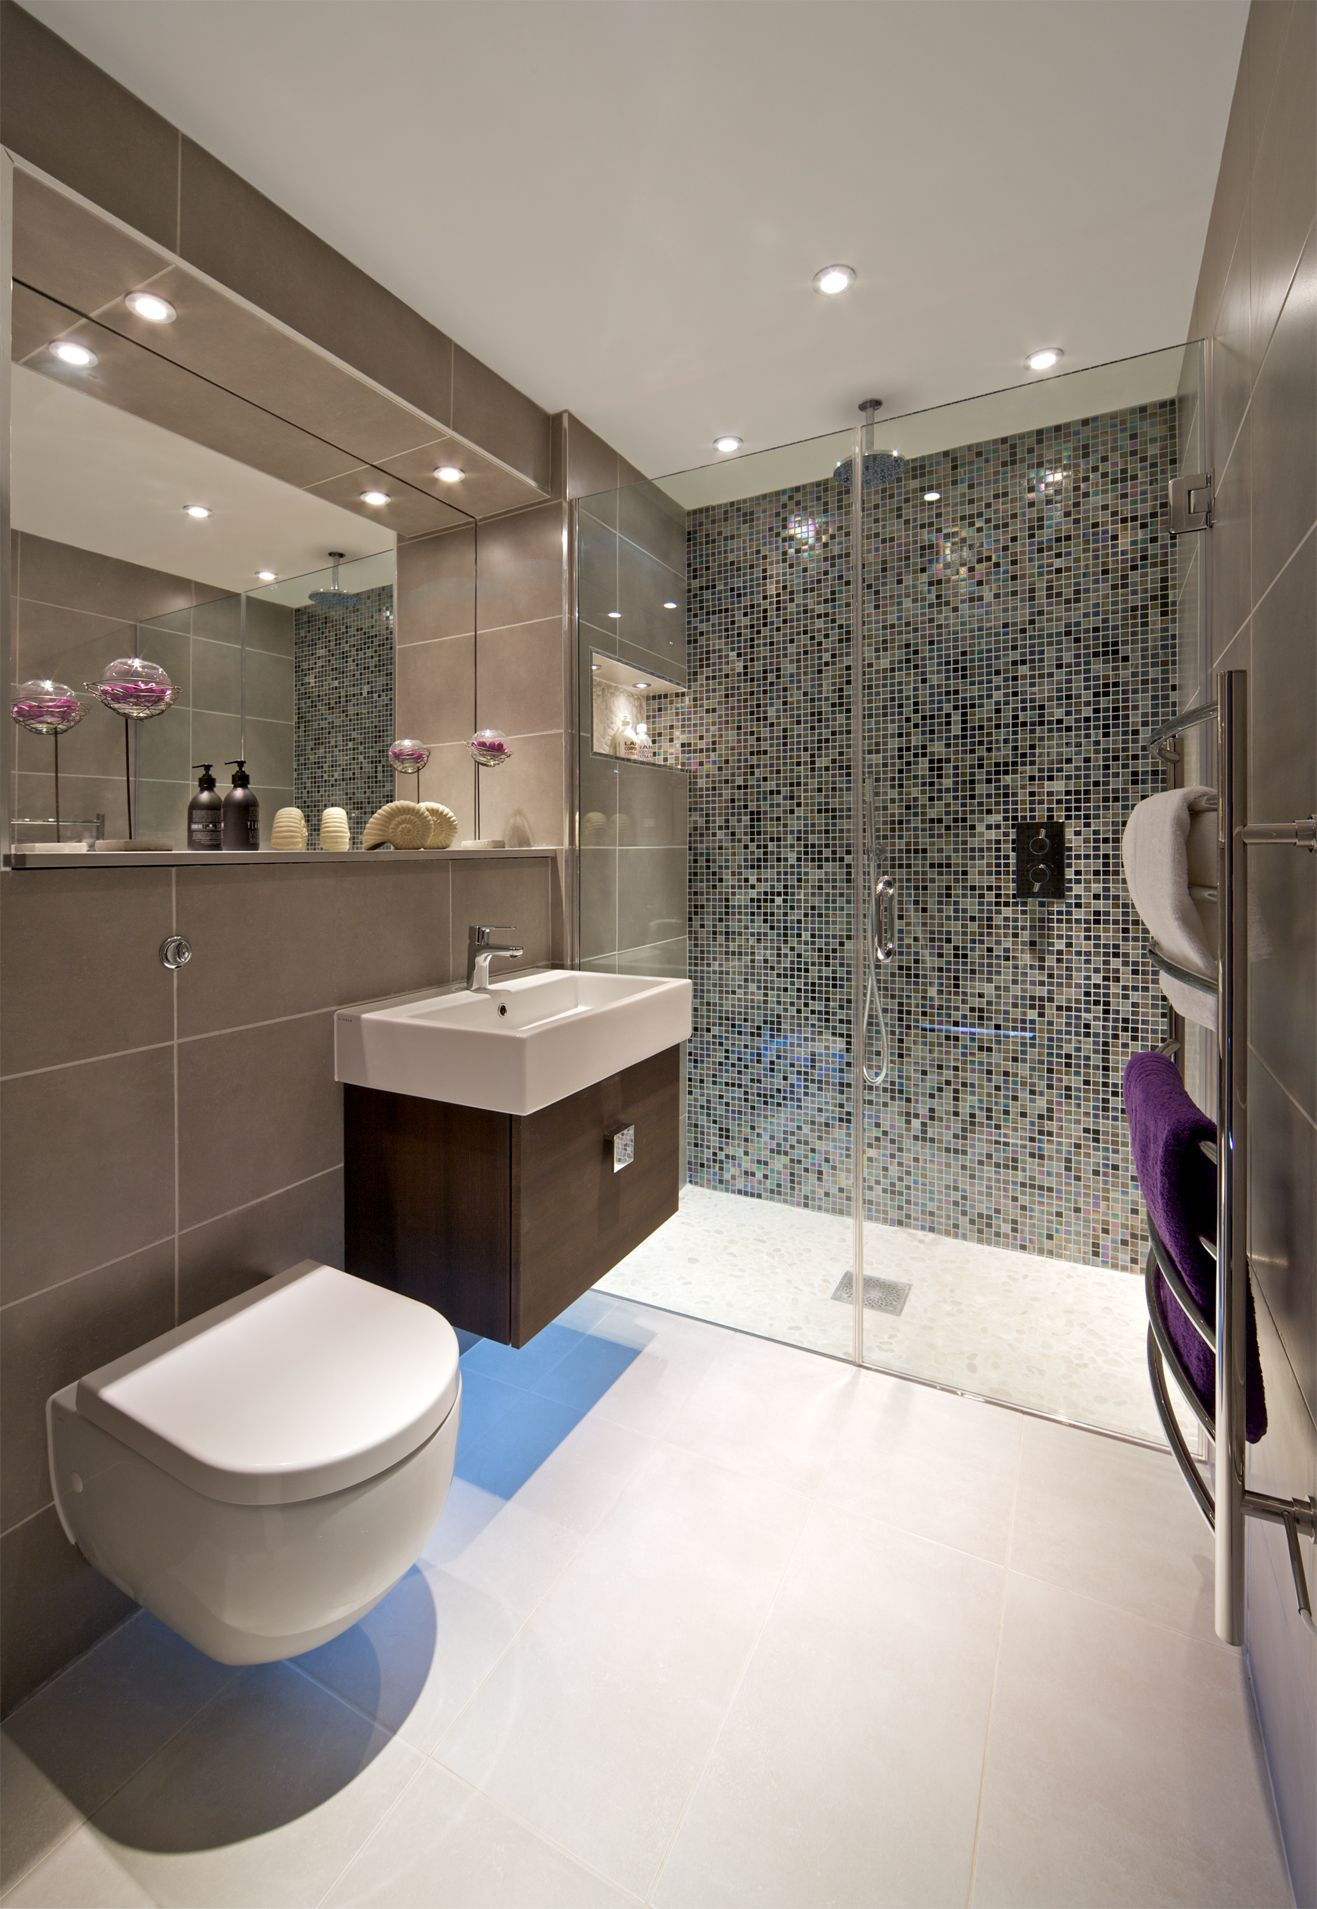 Ensuite Shower Room With Mosaic Feature Wall Wall Hung Wc